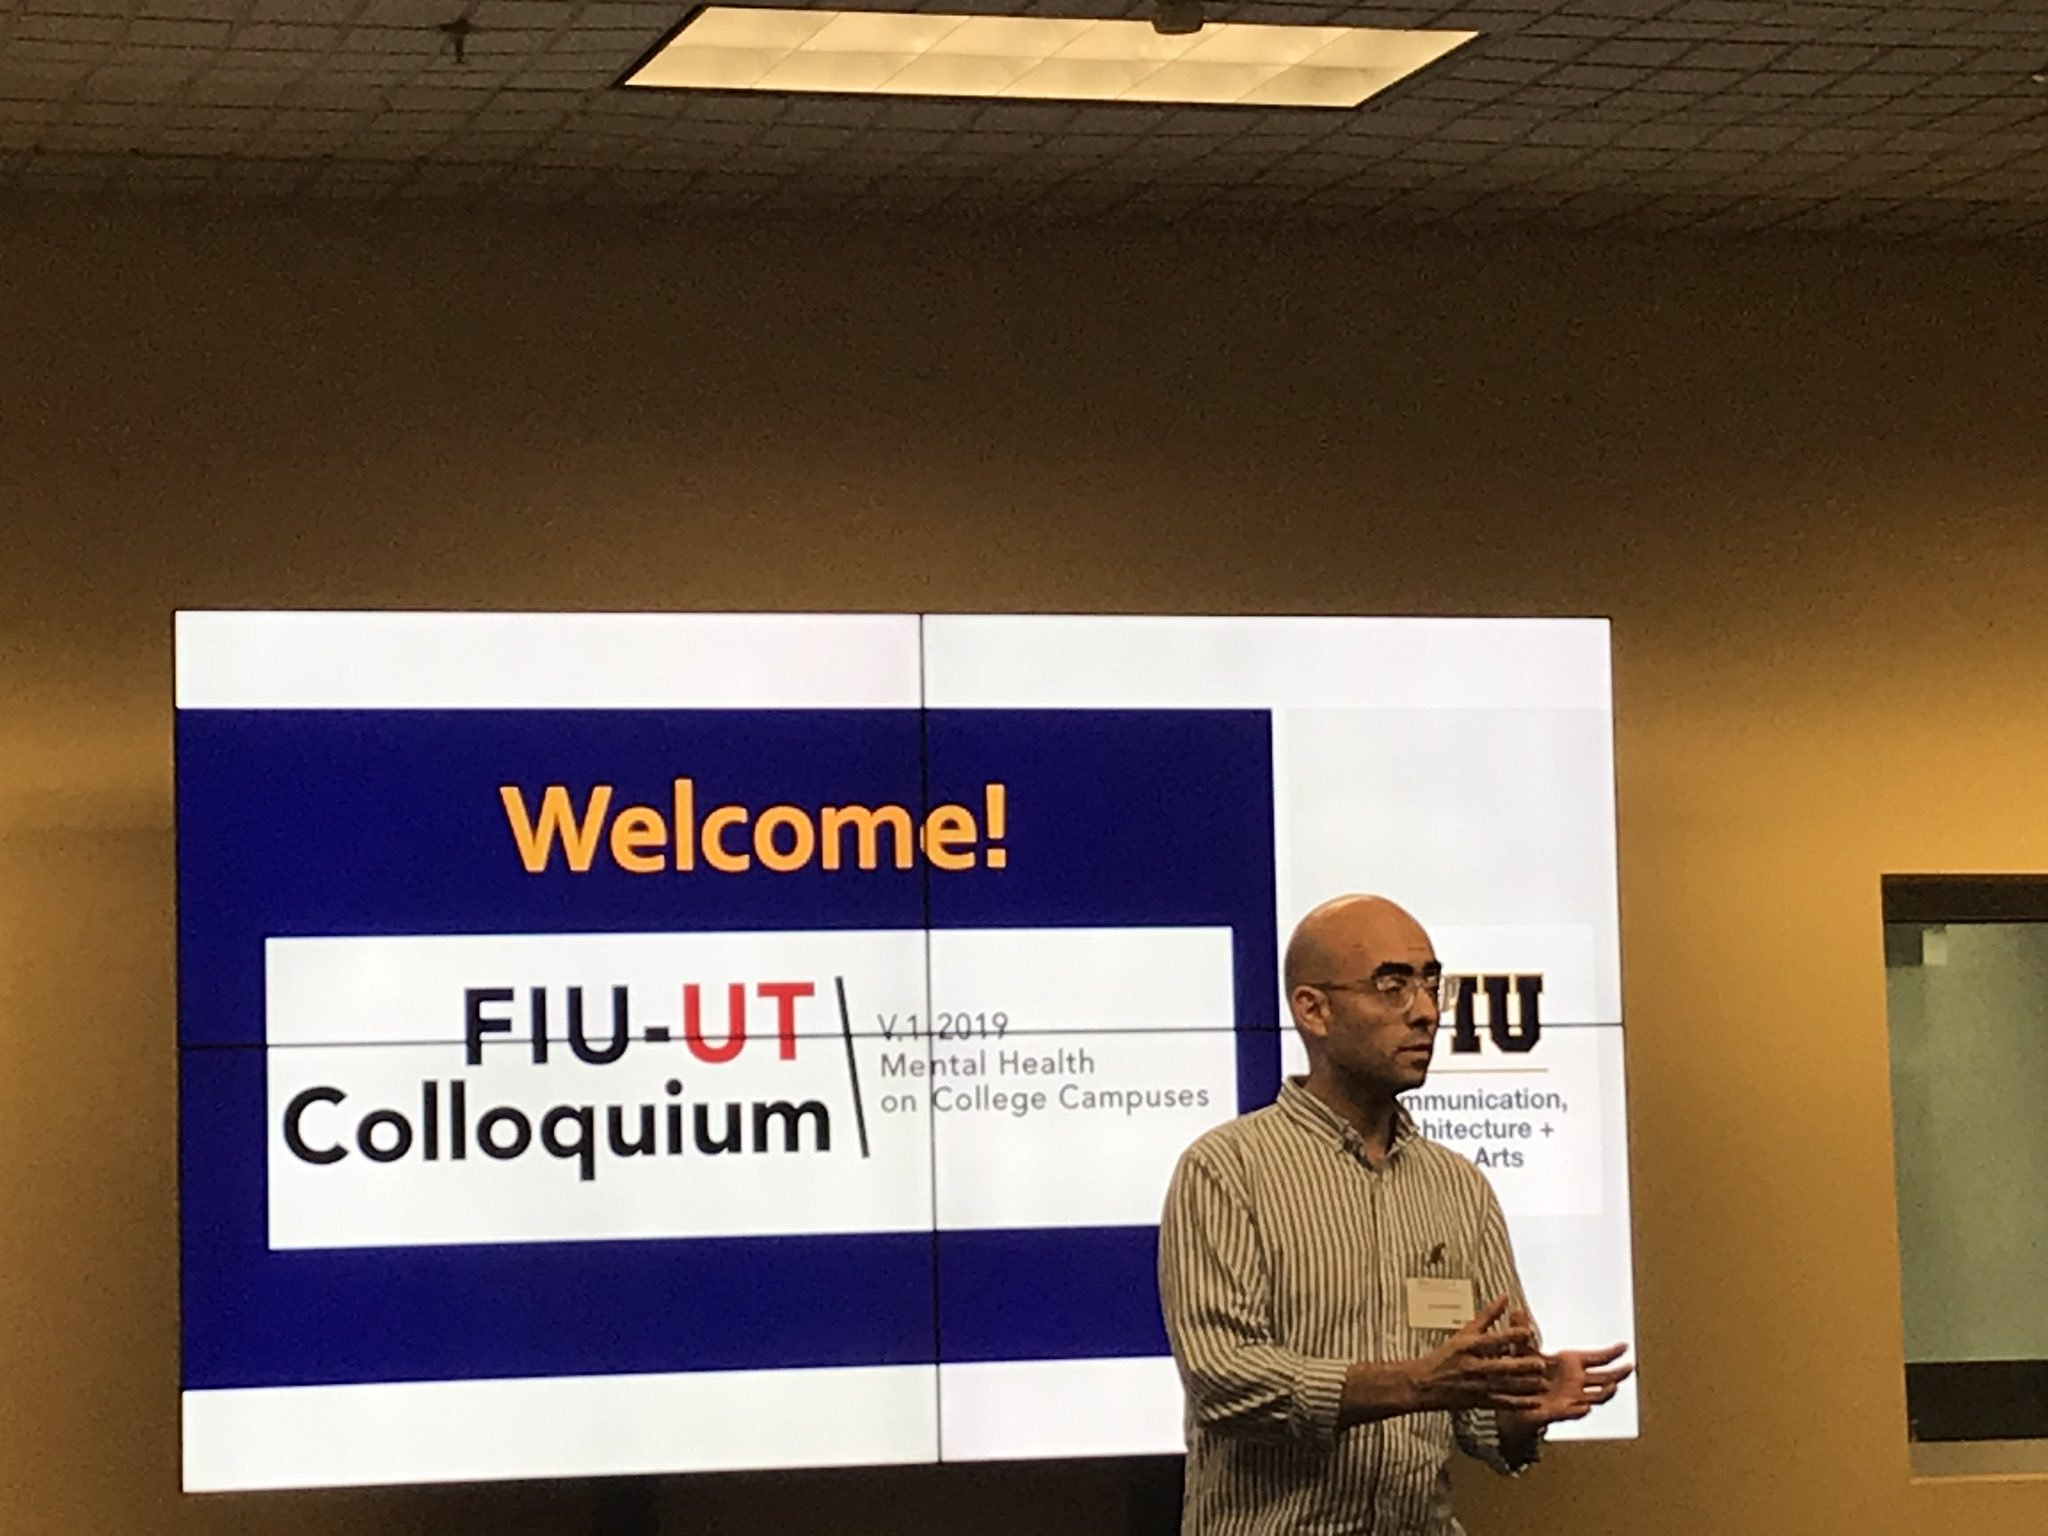 Juan S. Muhamad presenting at FIU mental health colloquium